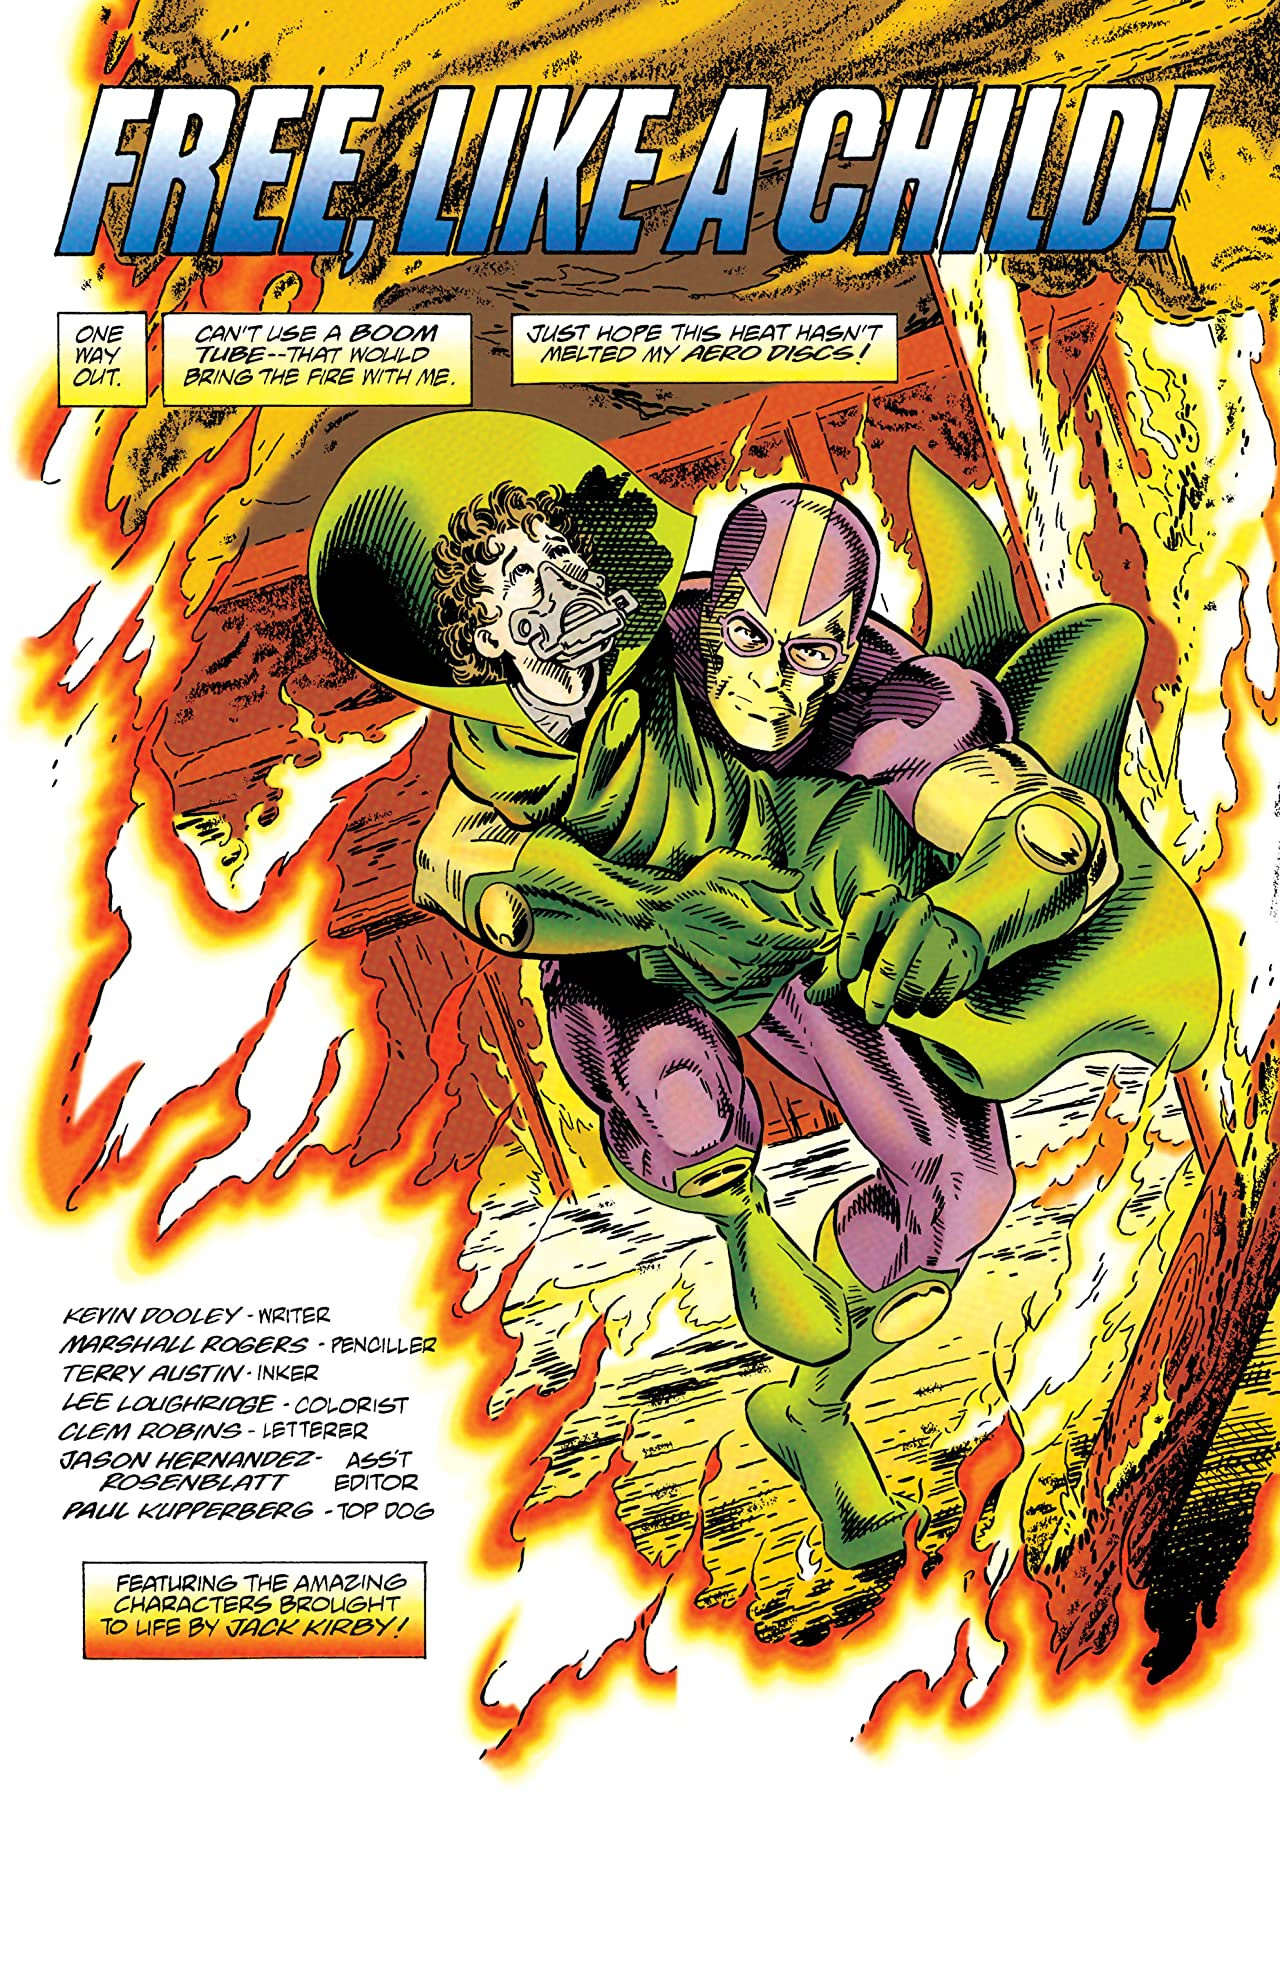 Mister Miracle (1996) #5